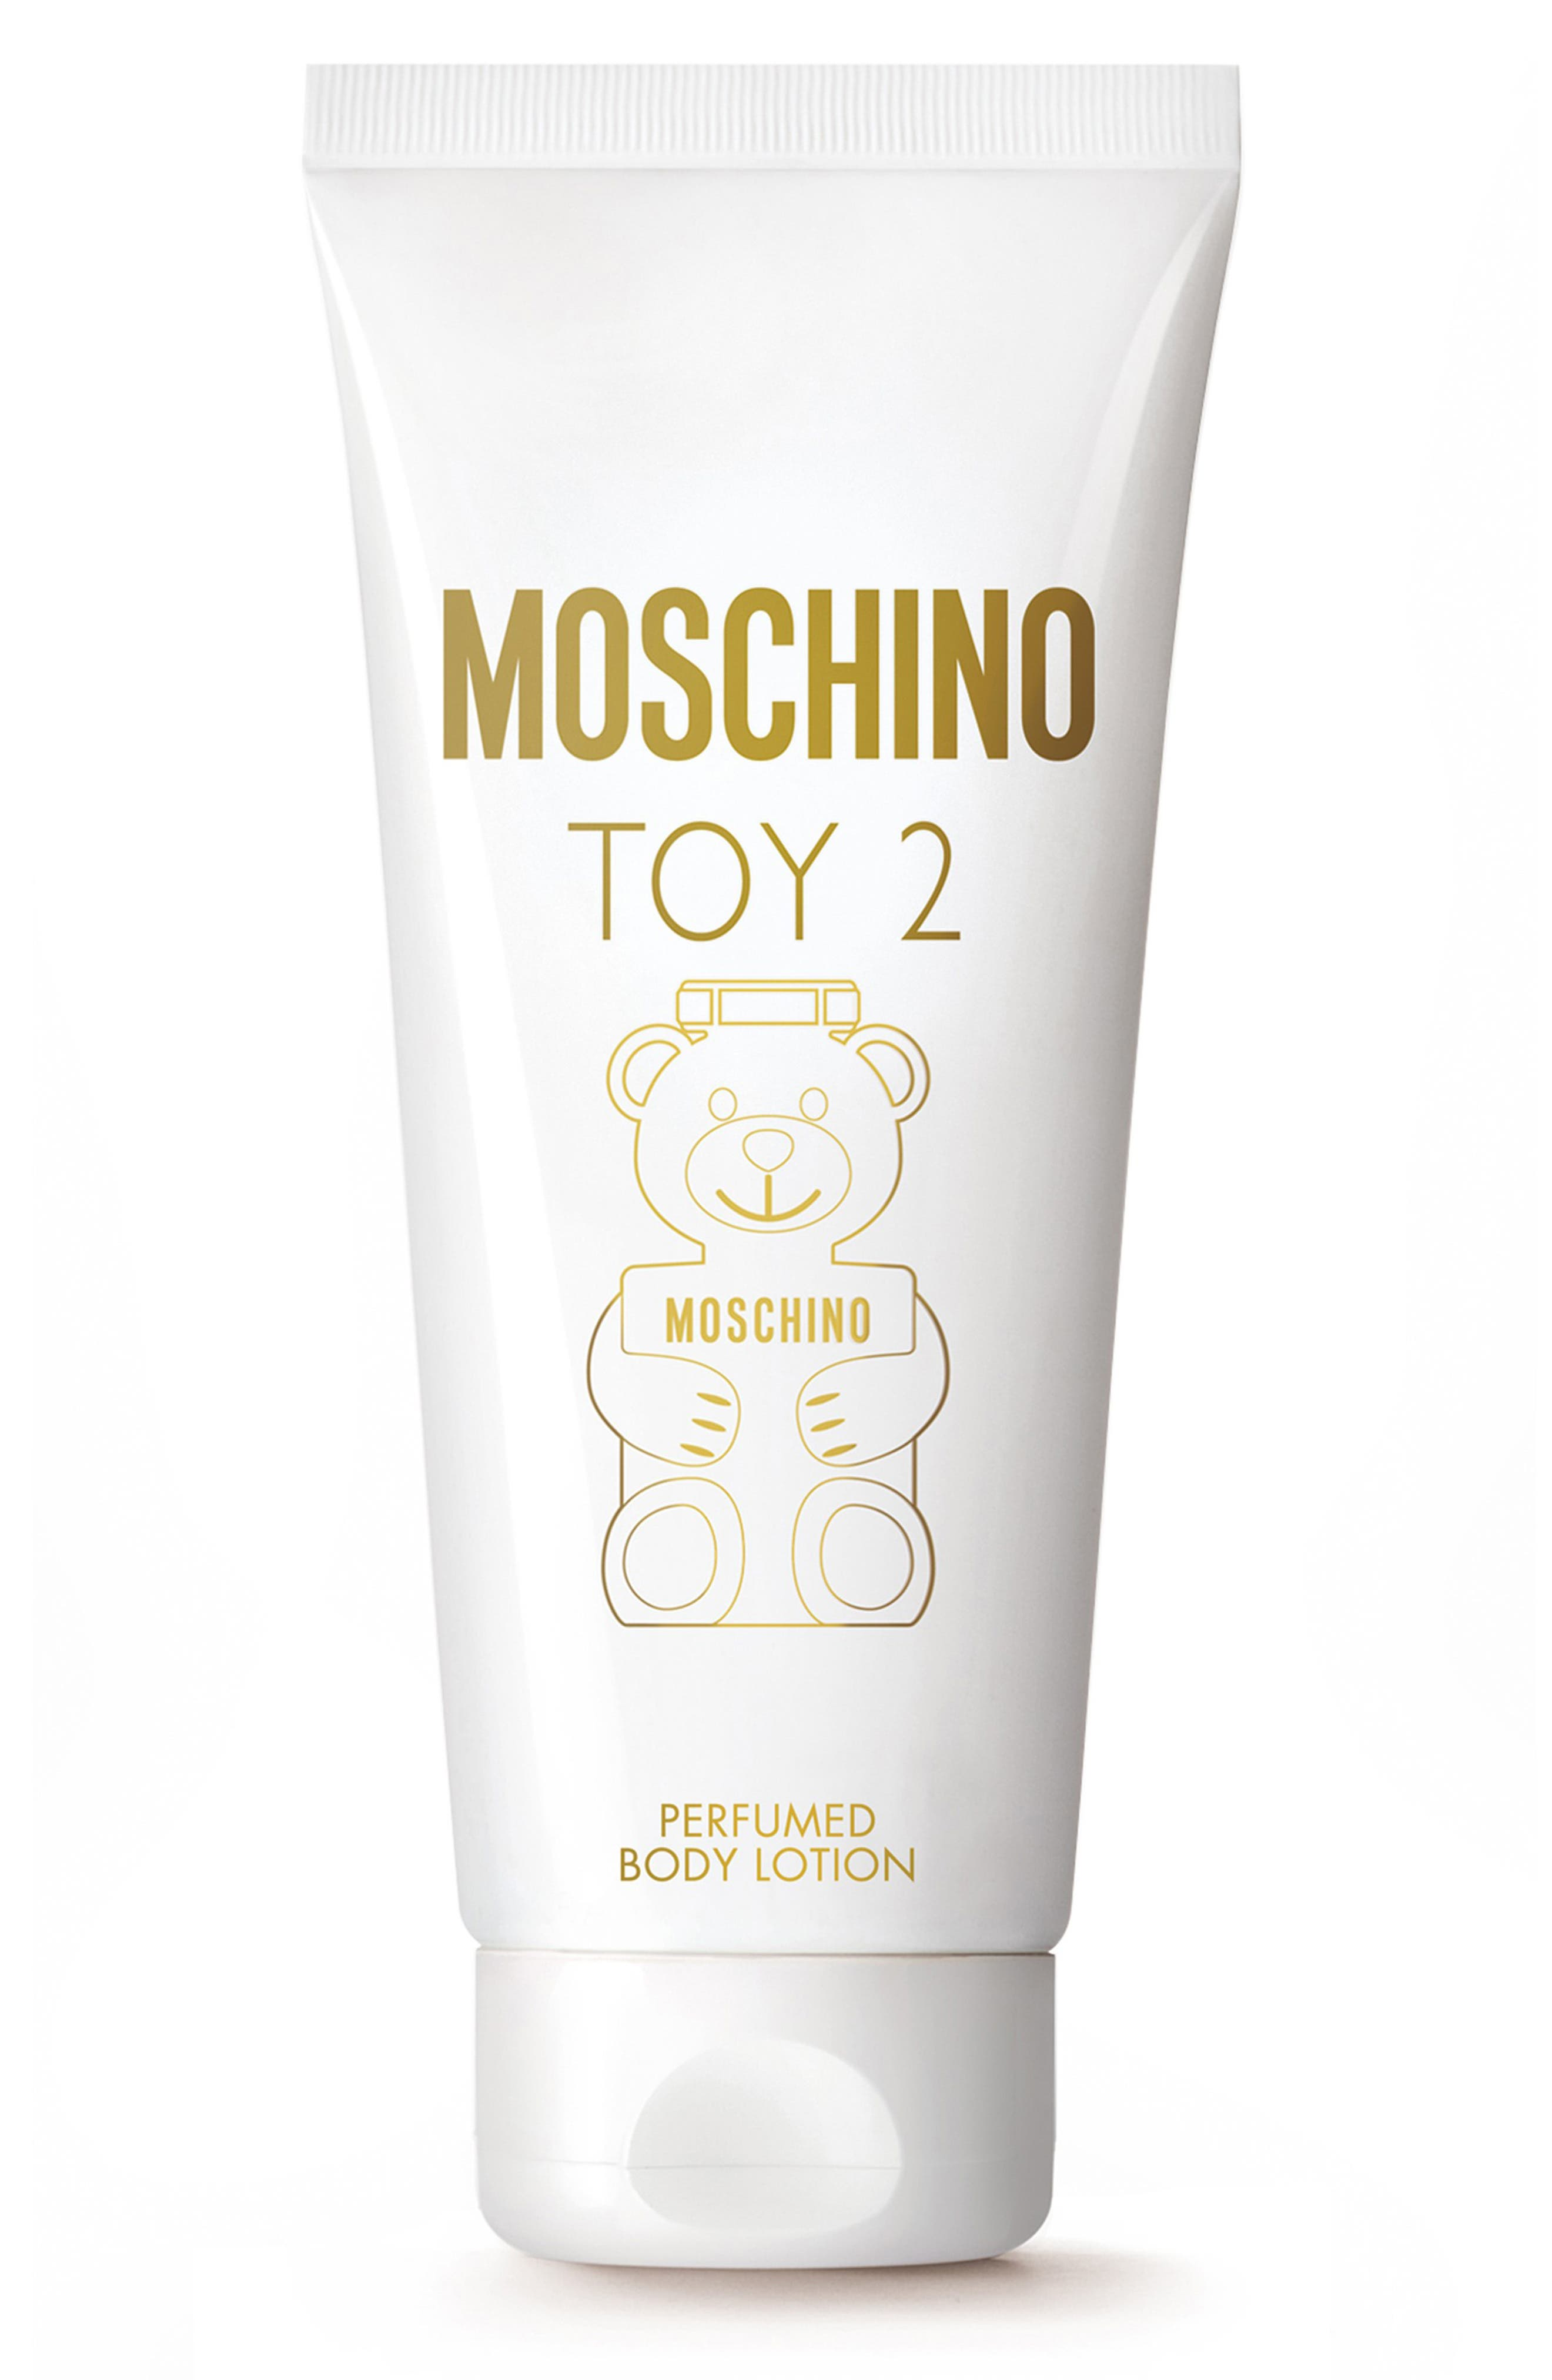 MOSCHINO, Toy 2 Perfumed Body Lotion, Main thumbnail 1, color, NO COLOR